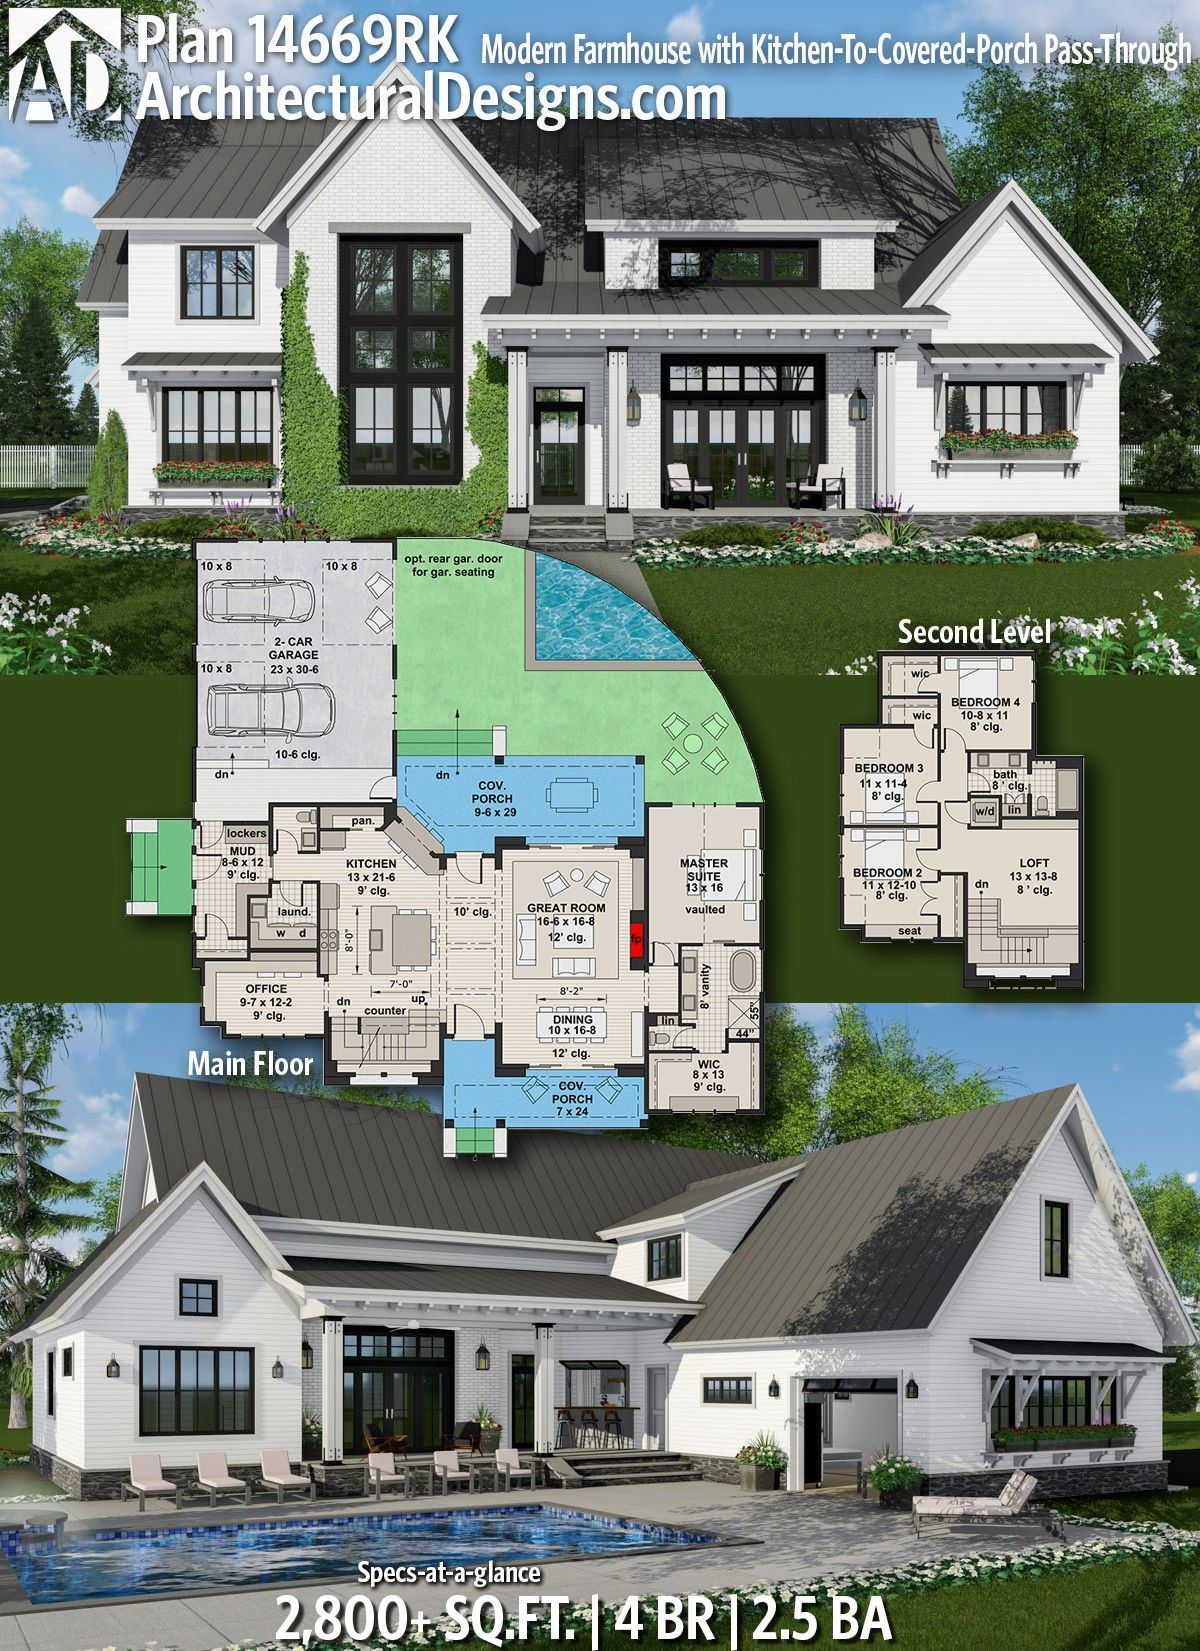 Plan 14669rk Modern Farmhouse With Kitchen To Covered